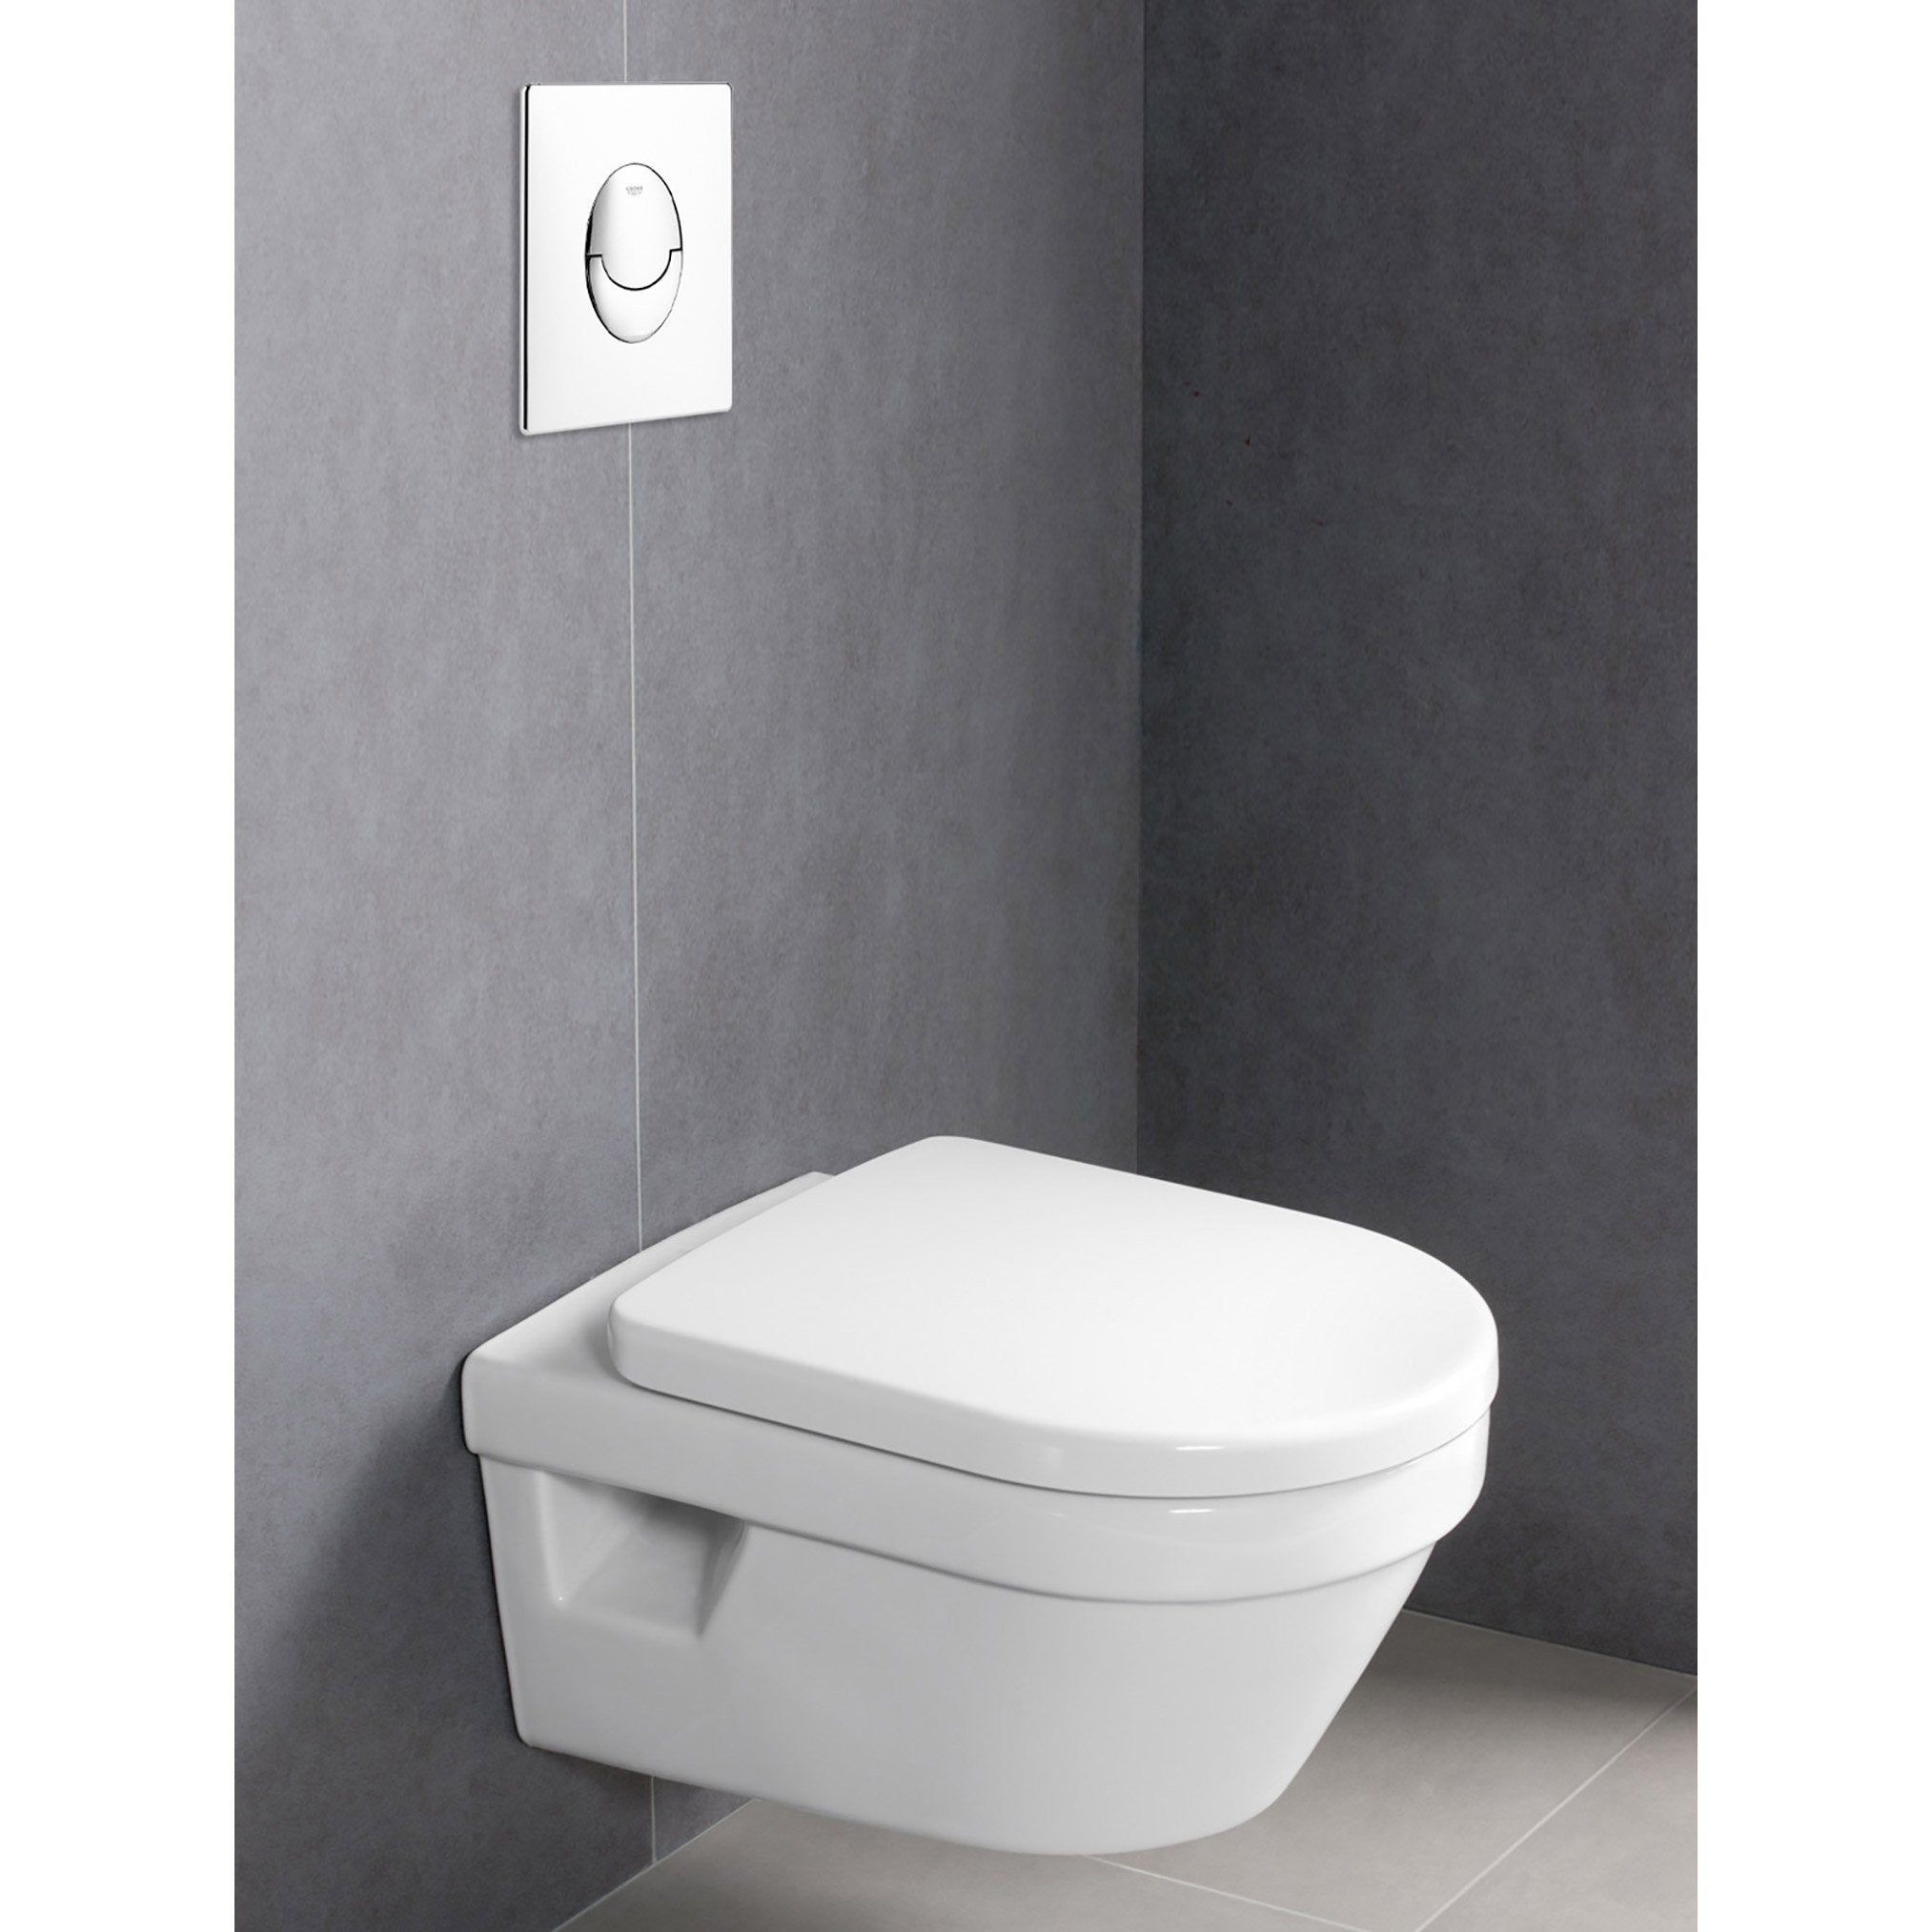 Pack Wc Suspendu Architectura Villeroy Boch Bati Mural Grohe Plaque Blanche En 2020 Pack Wc Suspendu Wc Suspendu Cuvette Wc Suspendu